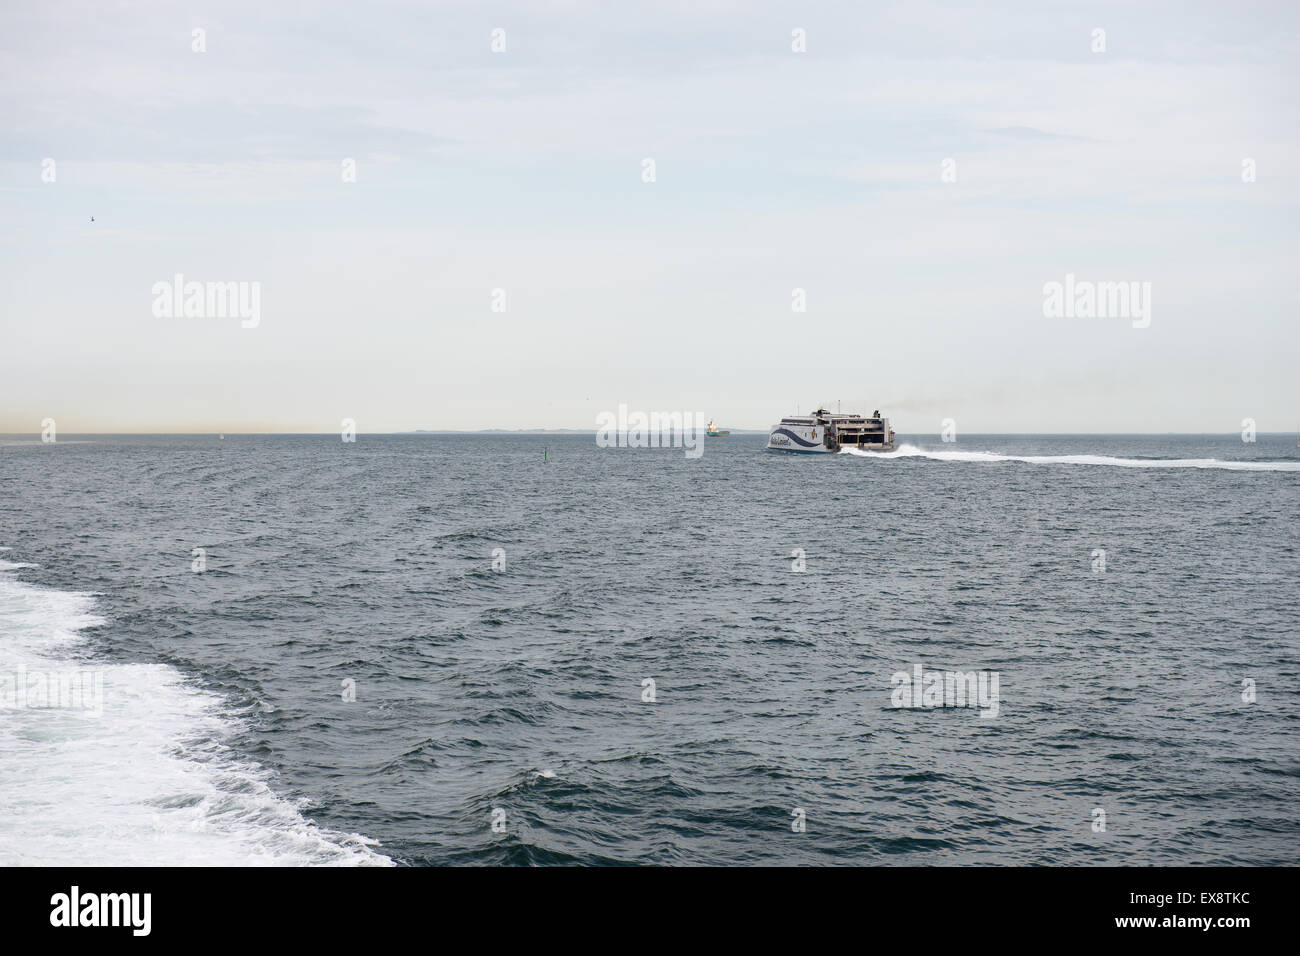 Mols-linien ferry on the sea running fast seen from the back - Stock Image